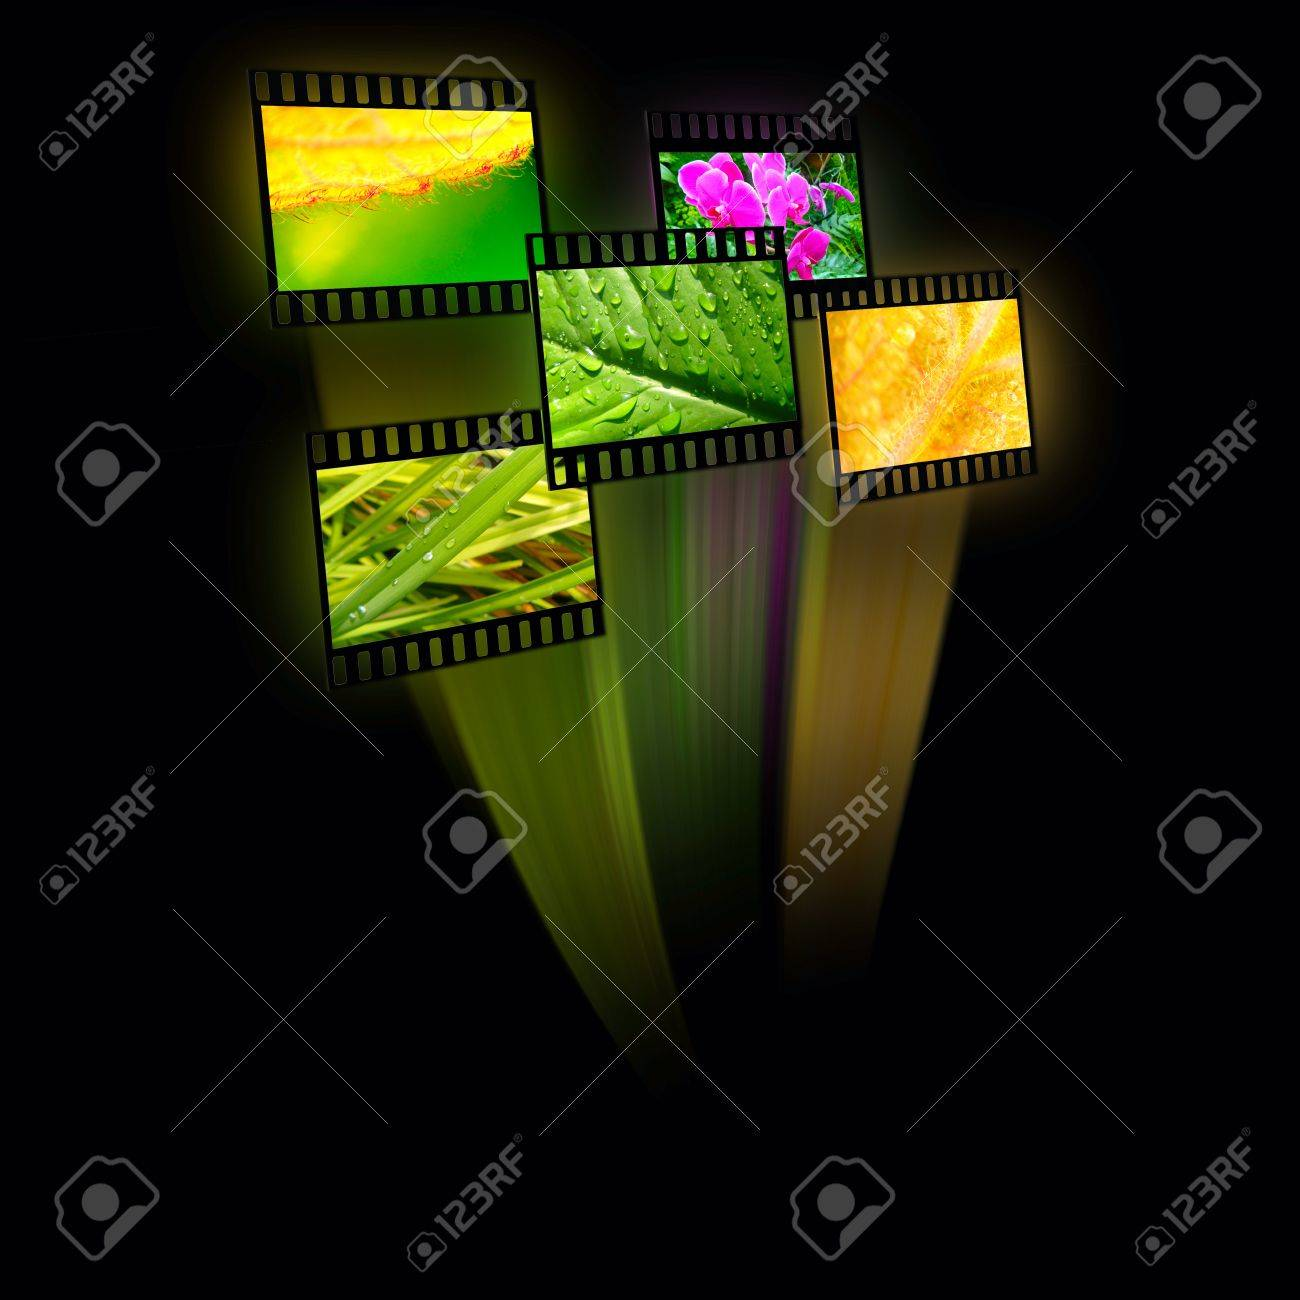 Film frames with color pictures (nature) on black background. - 12244731